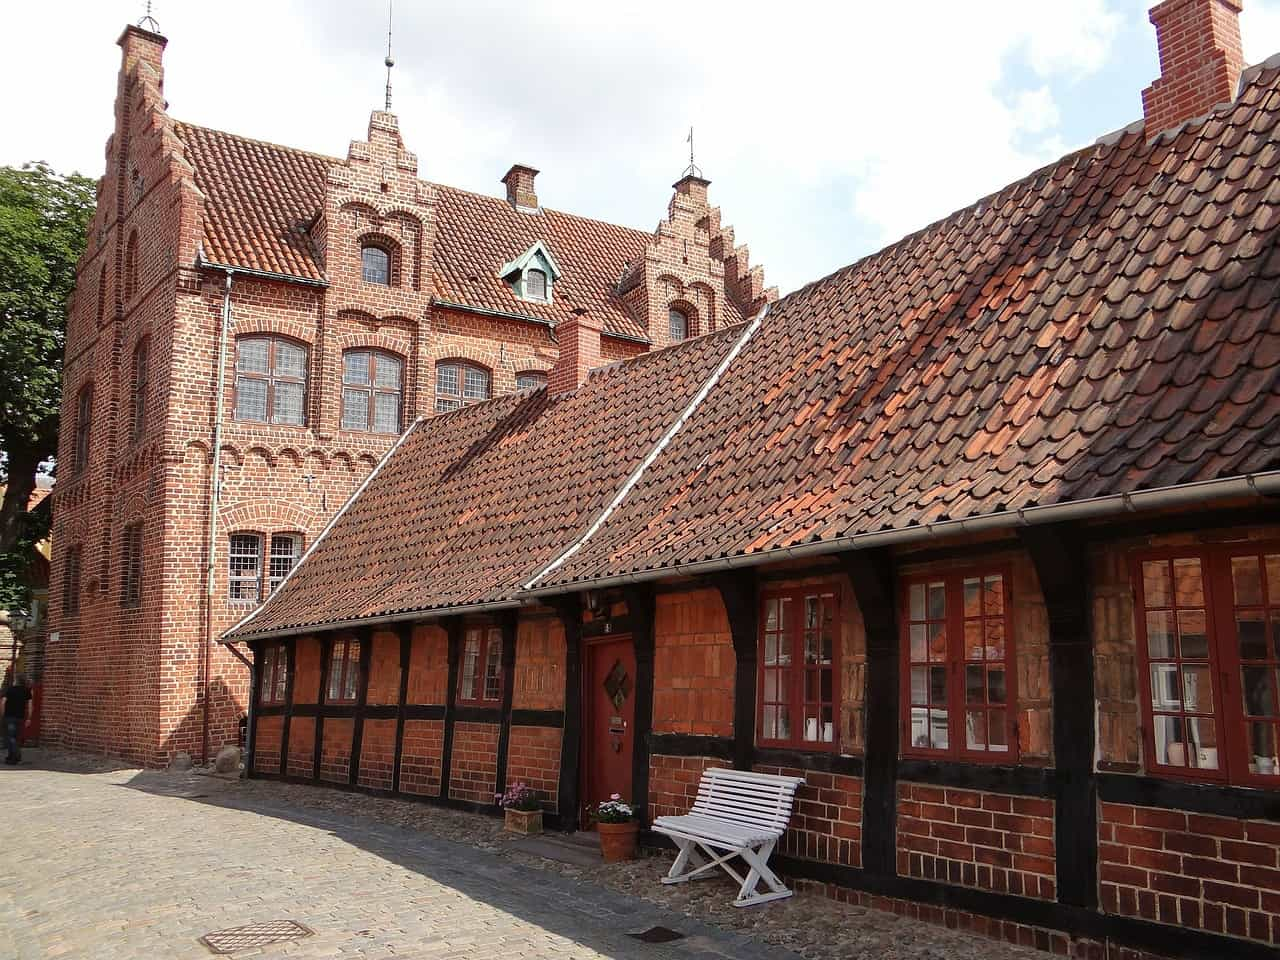 Ribe is one of the oldest and most beautifully preserved villages in Denmark. This beautiful place is known for its beautiful old houses, beautiful cathedral and beautiful scenery in the area.